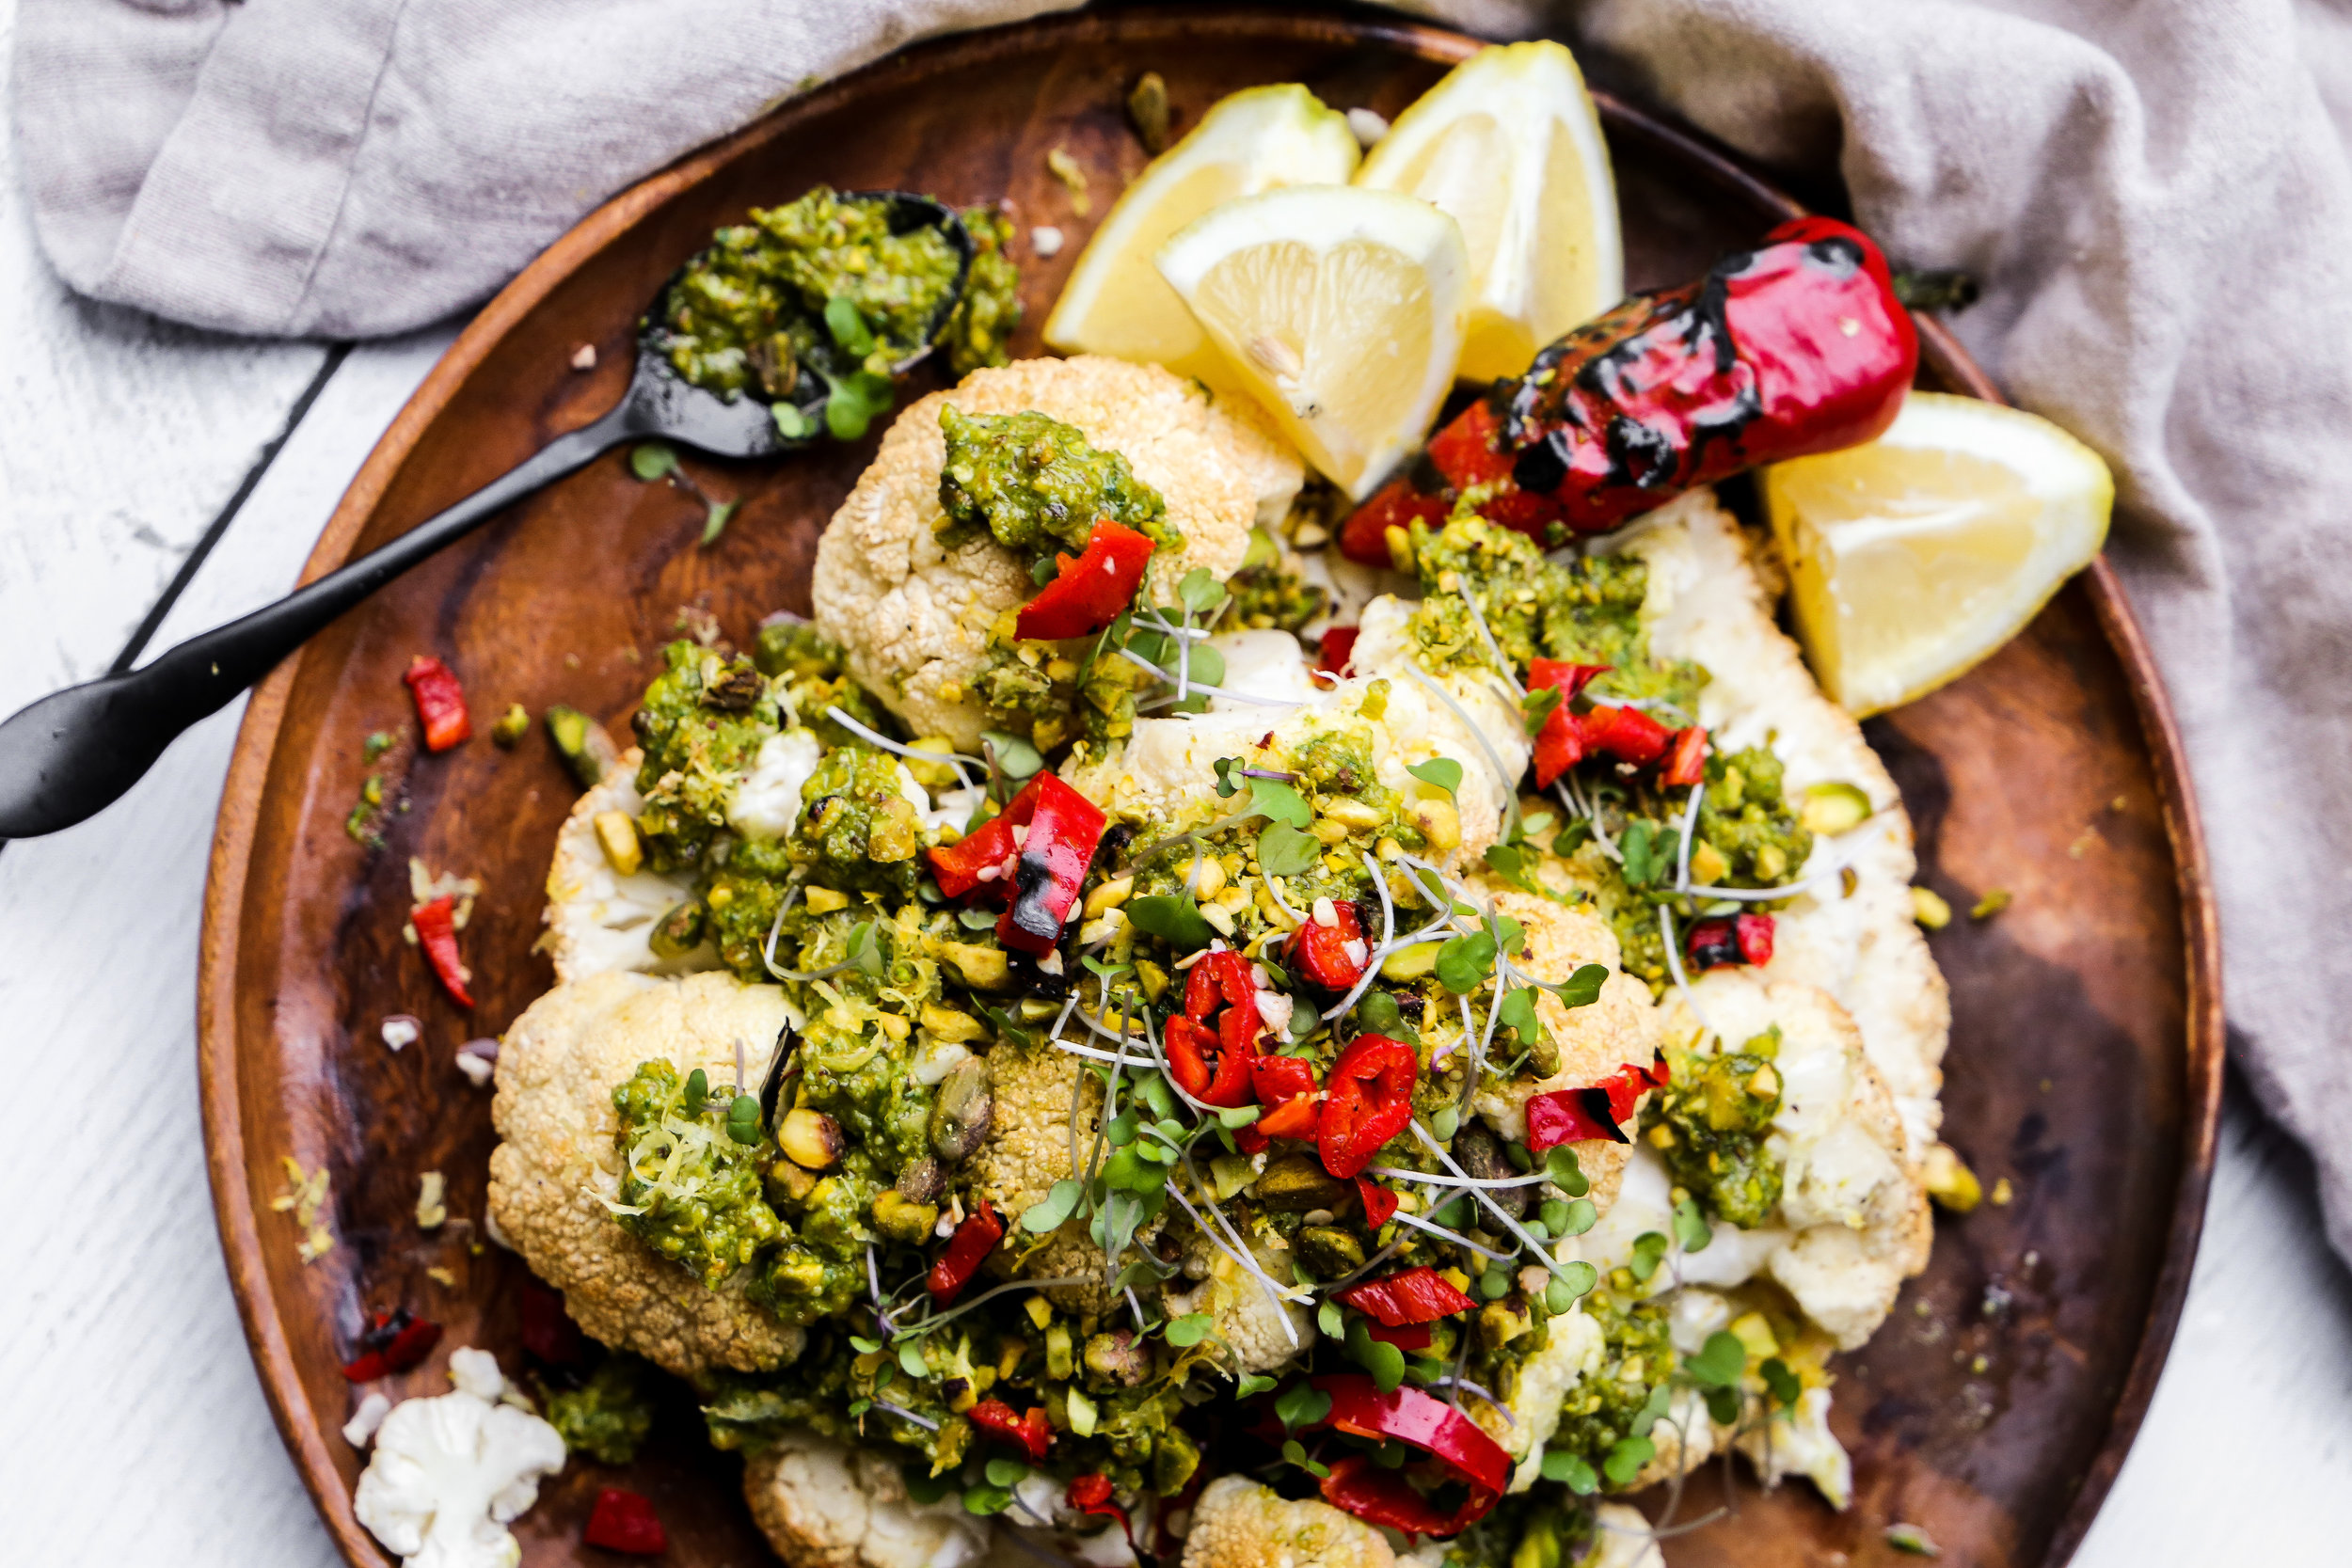 Jeweled Cauliflower - The crowning dish of a vegetarian table